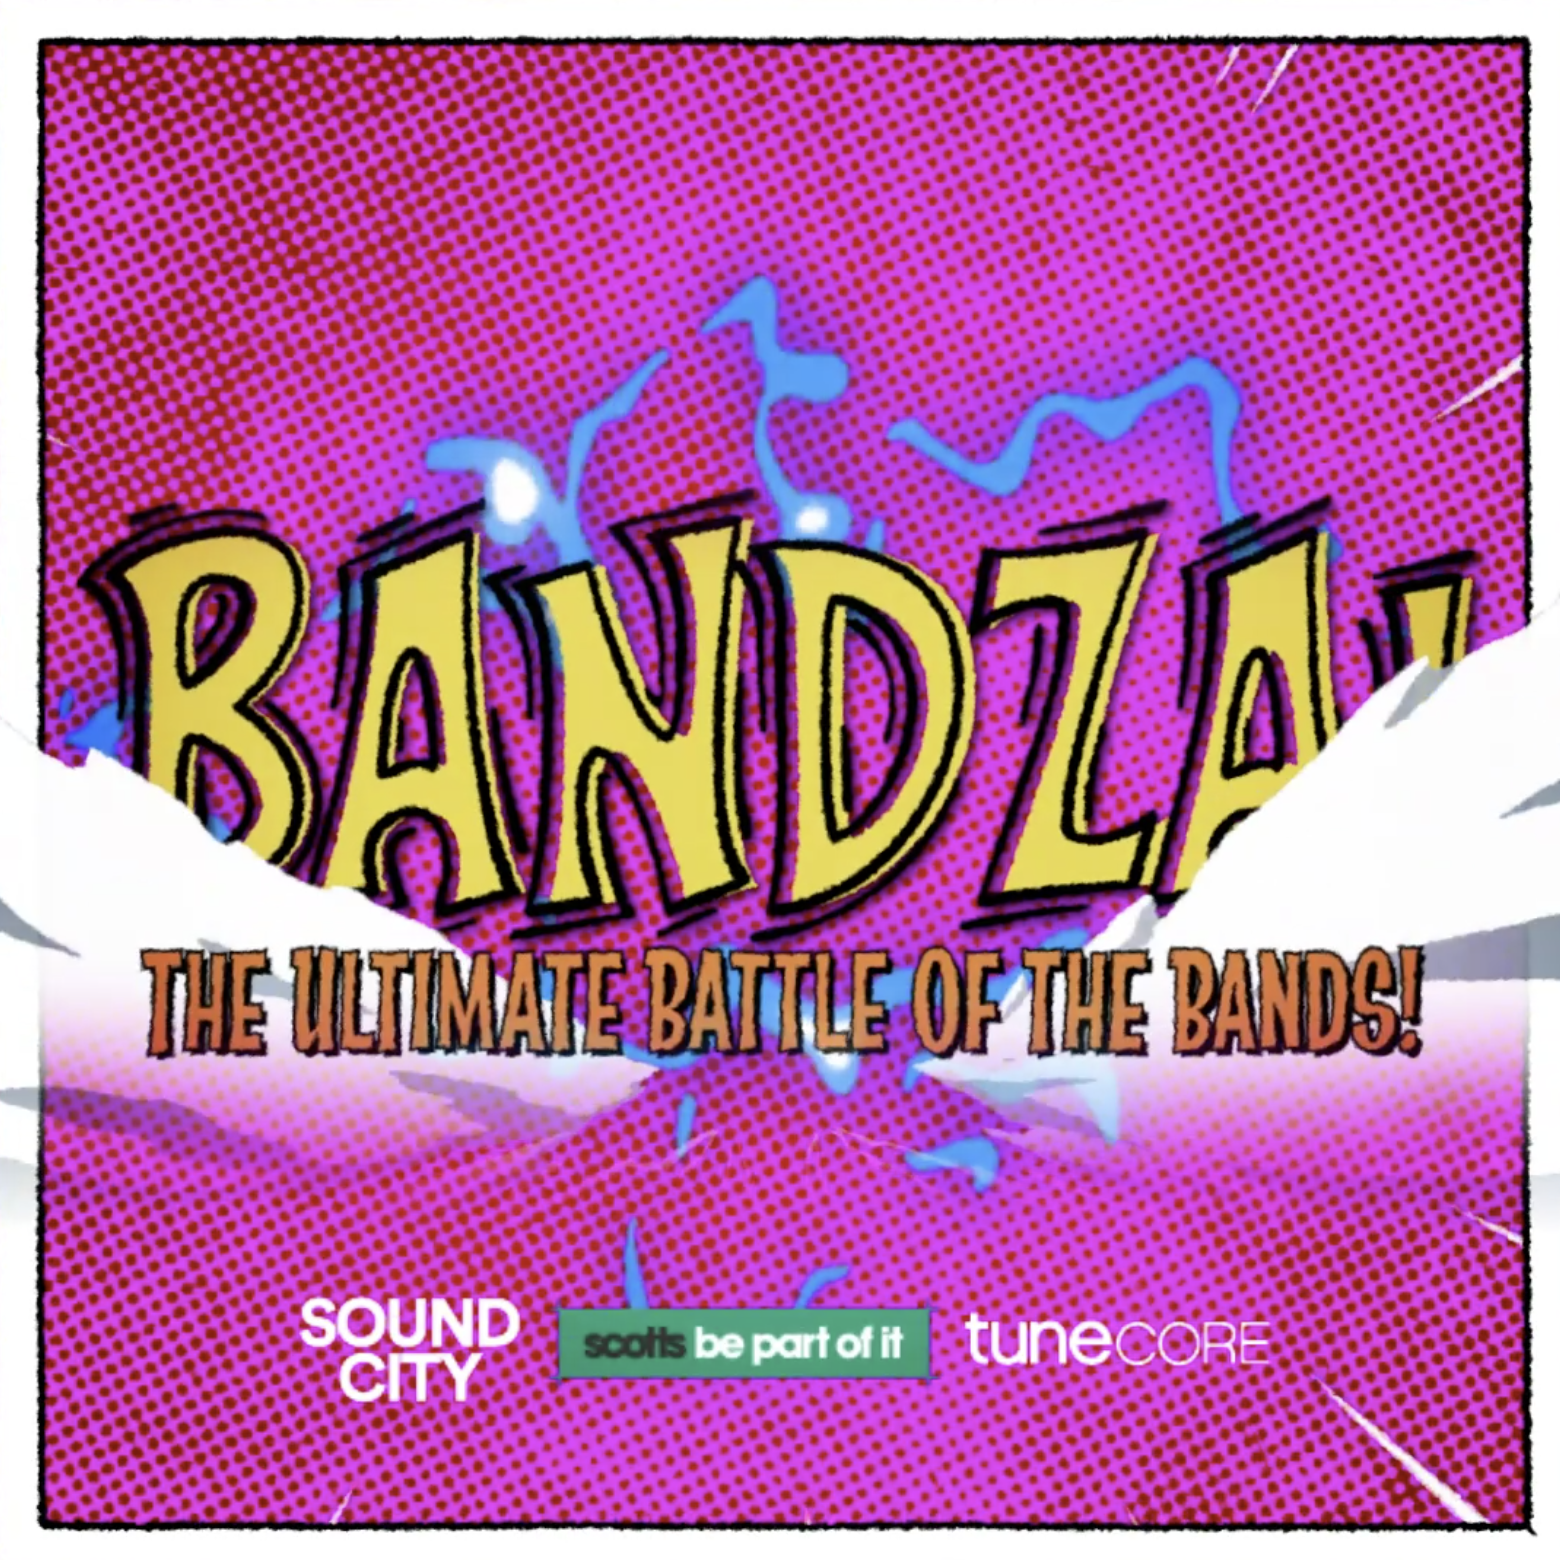 Guesthouse presents.. Bandzai: The Ultimate Battle Of The Bands